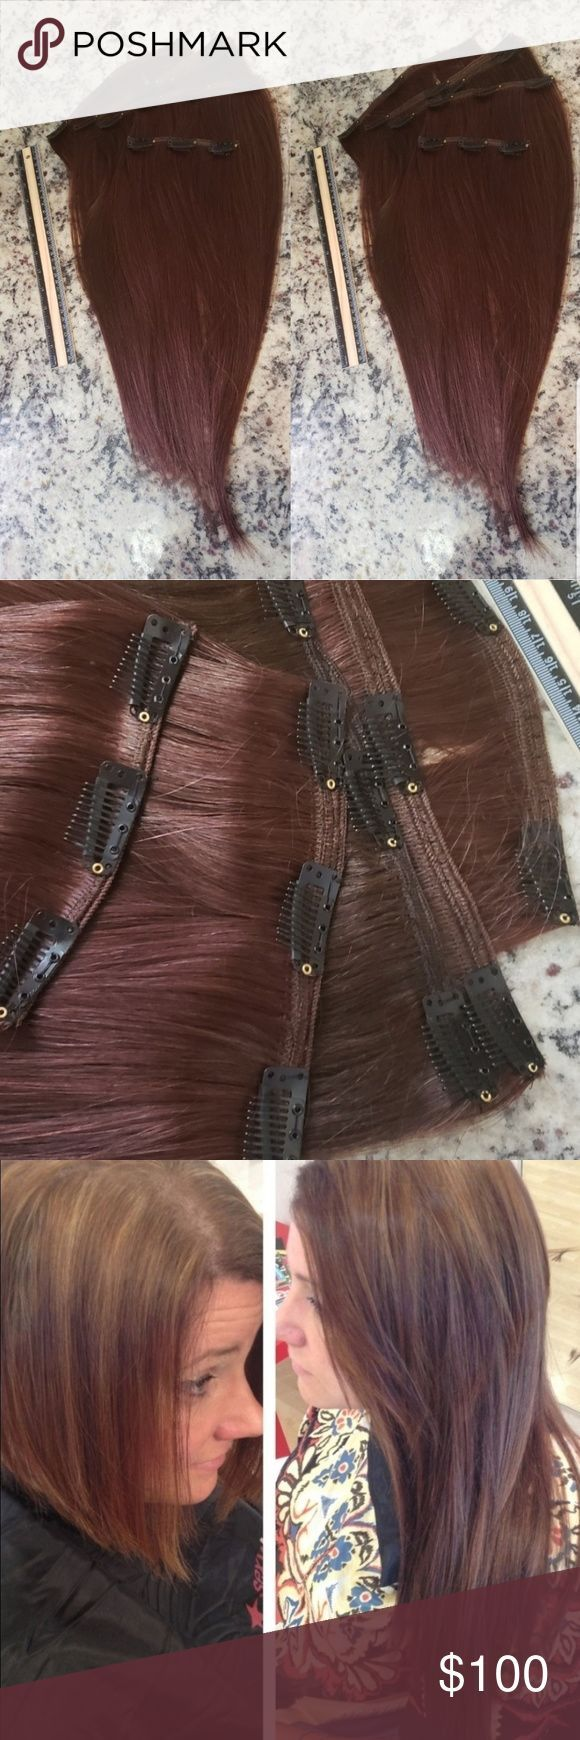 5 pcs Double Wefted 🌟 Clip in Hair Extensions ….